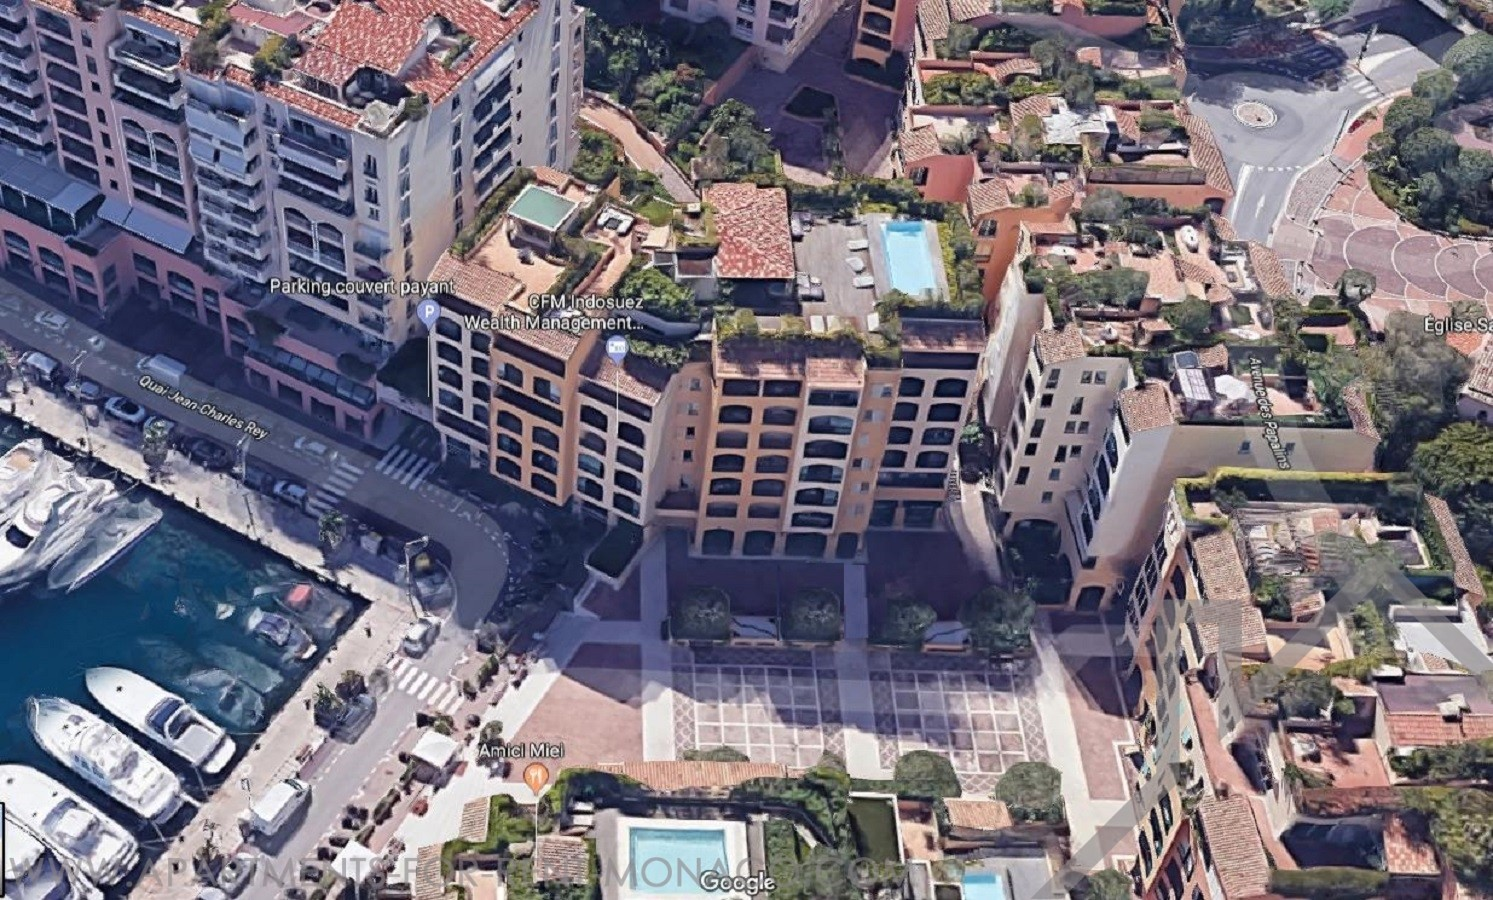 FONTVIEILLE MANTEGNA 43 m² WITH CELLAR - Apartments for rent in Monaco